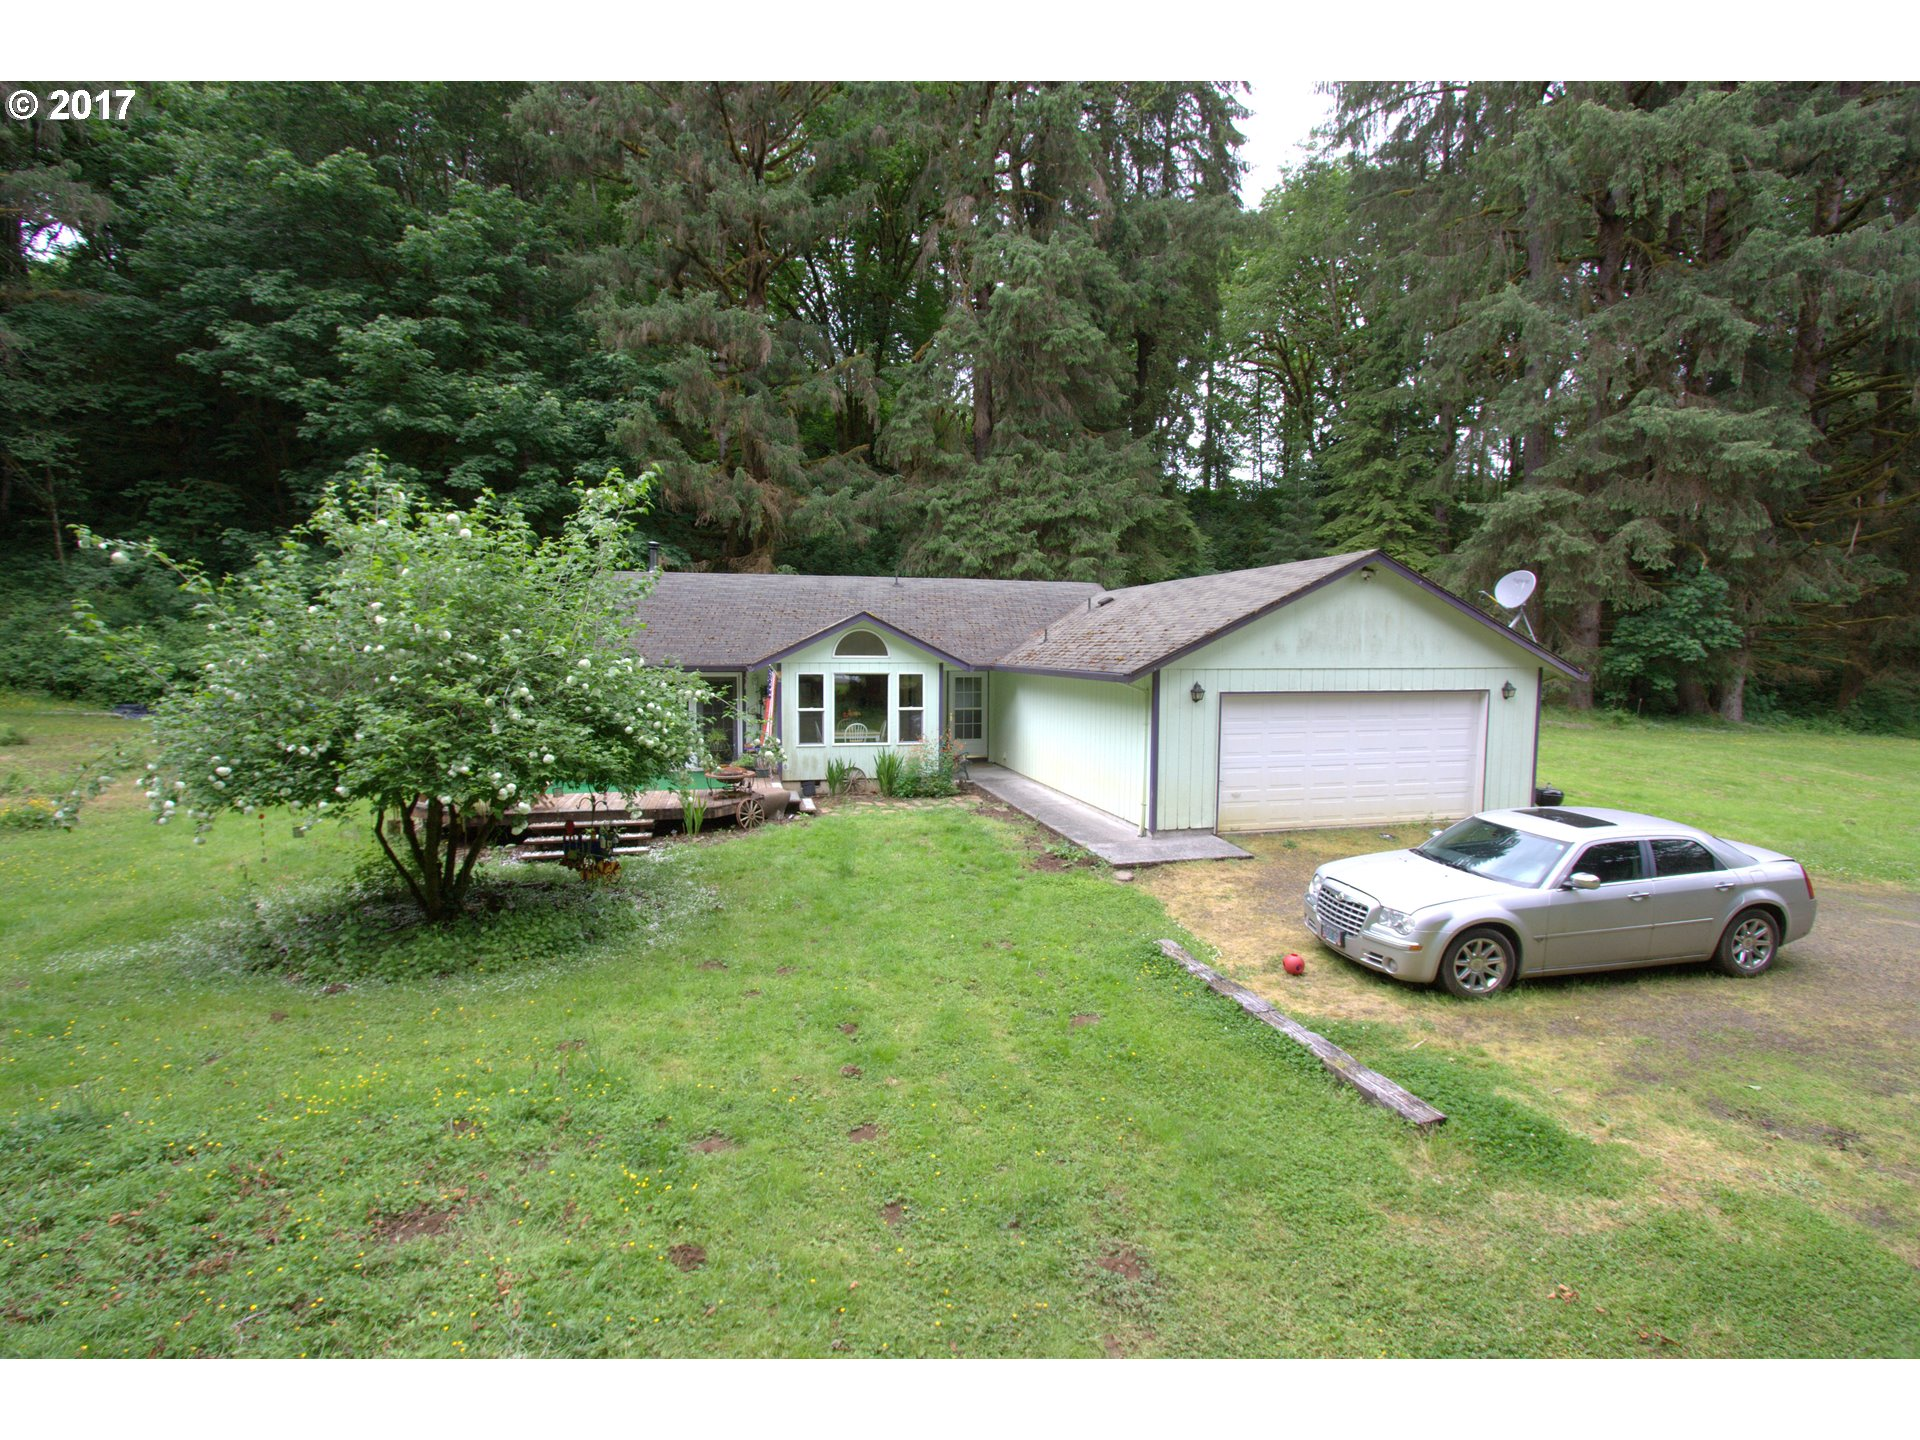 1552 sq. ft 3 bedrooms 2 bathrooms  House For Sale,Seaside, OR